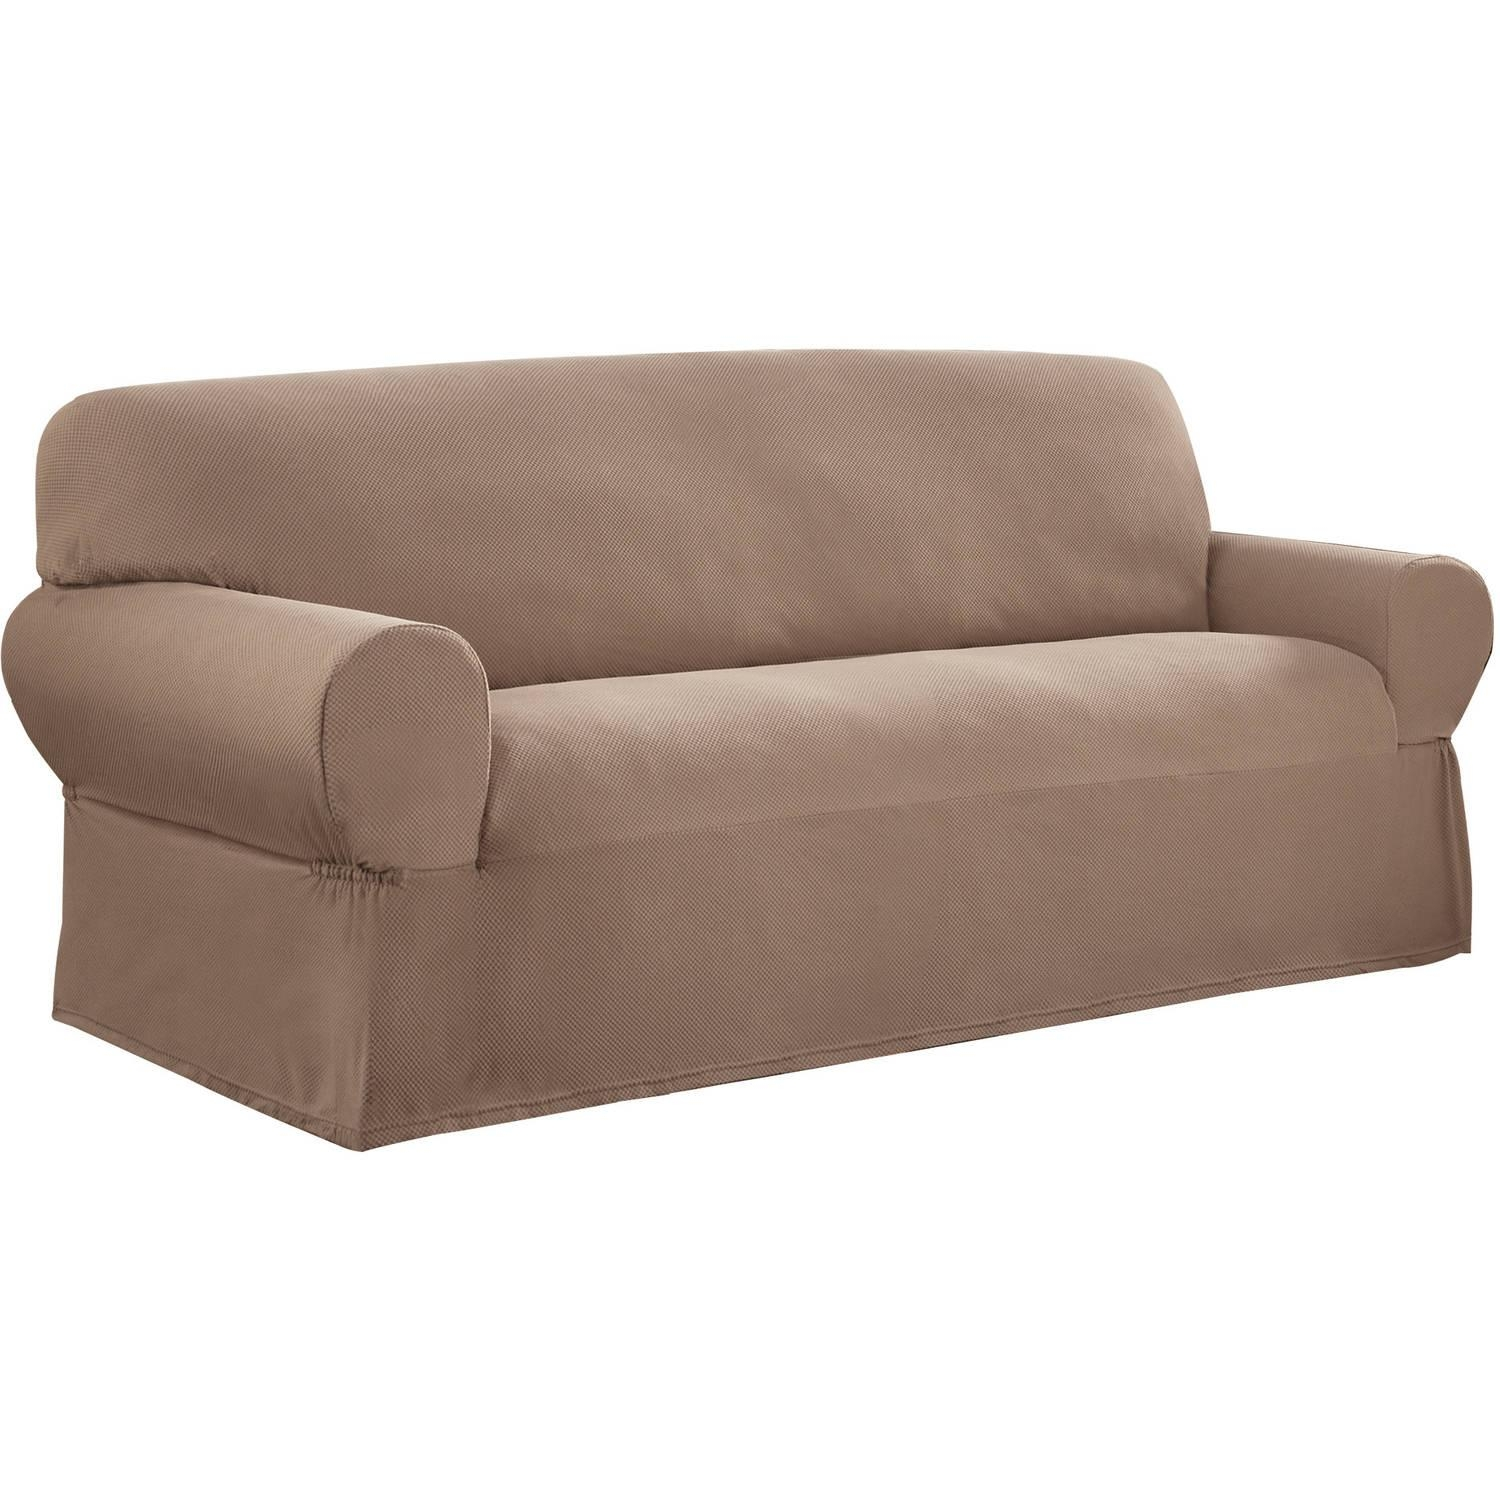 Sure Fit Scroll Brown Sofa Slipcover – Walmart Pertaining To Slipcovers For 3 Cushion Sofas (Image 20 of 20)